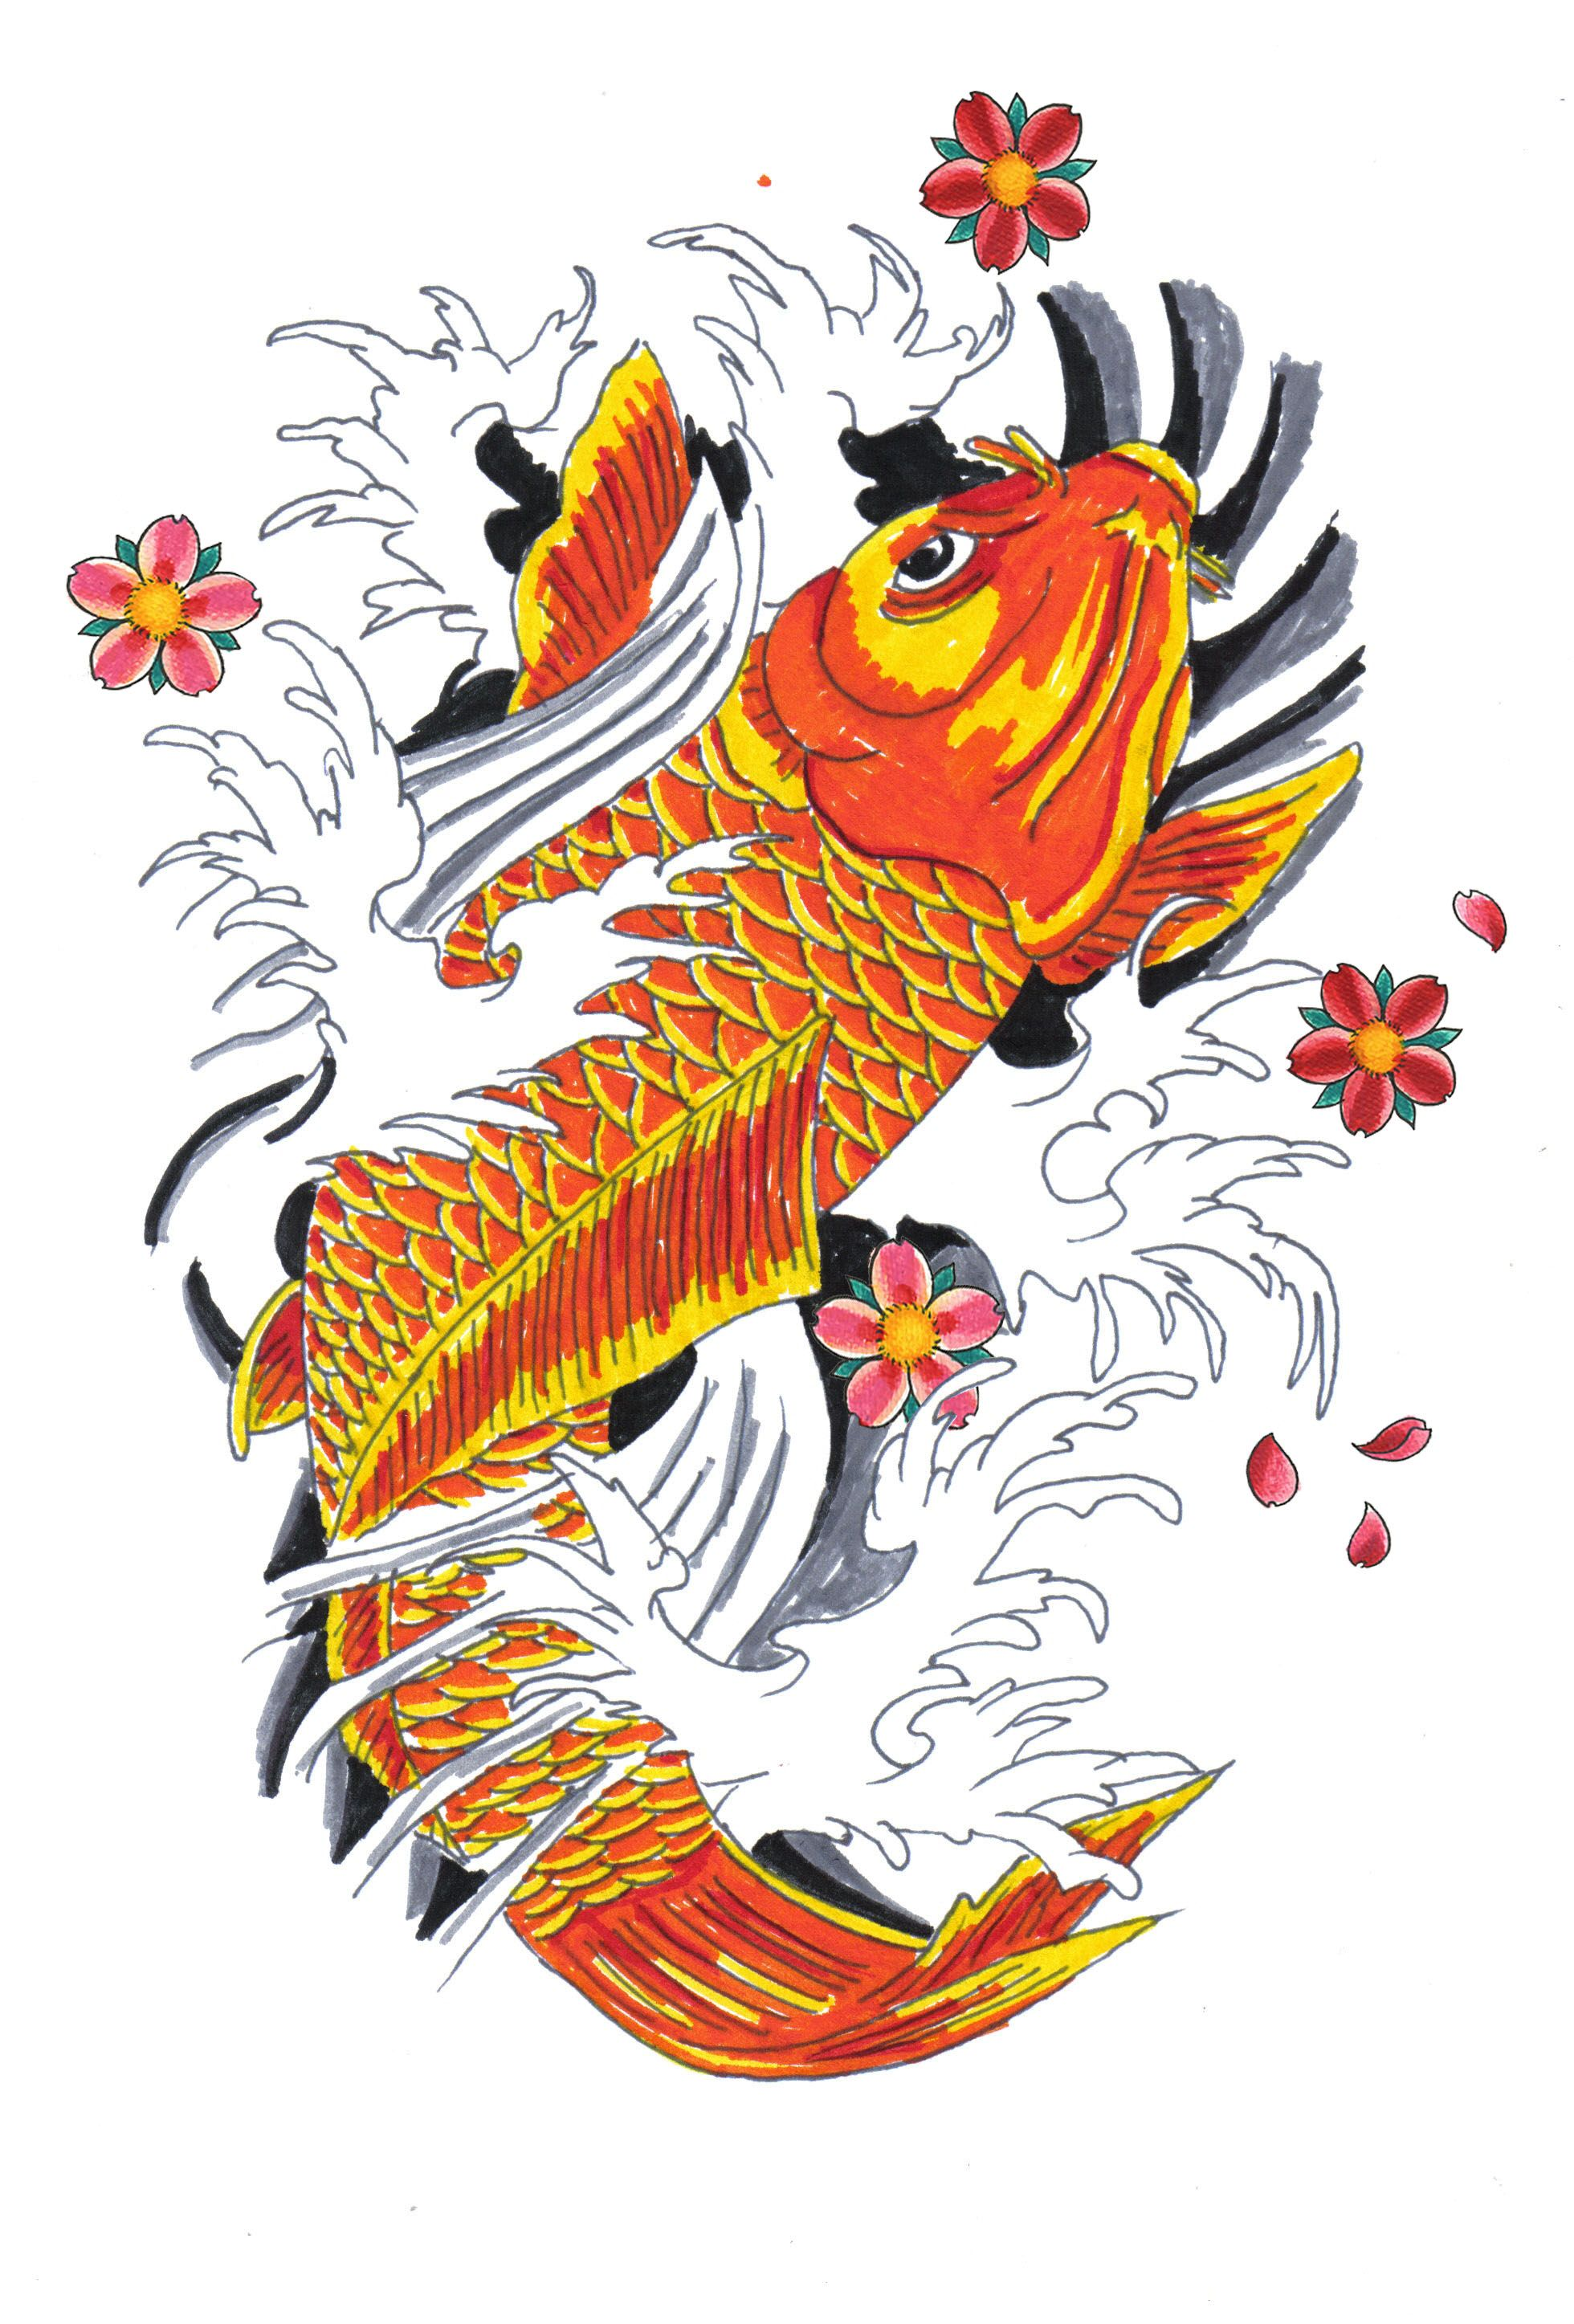 It is an image of Adorable Japanese Koi Fish Drawing